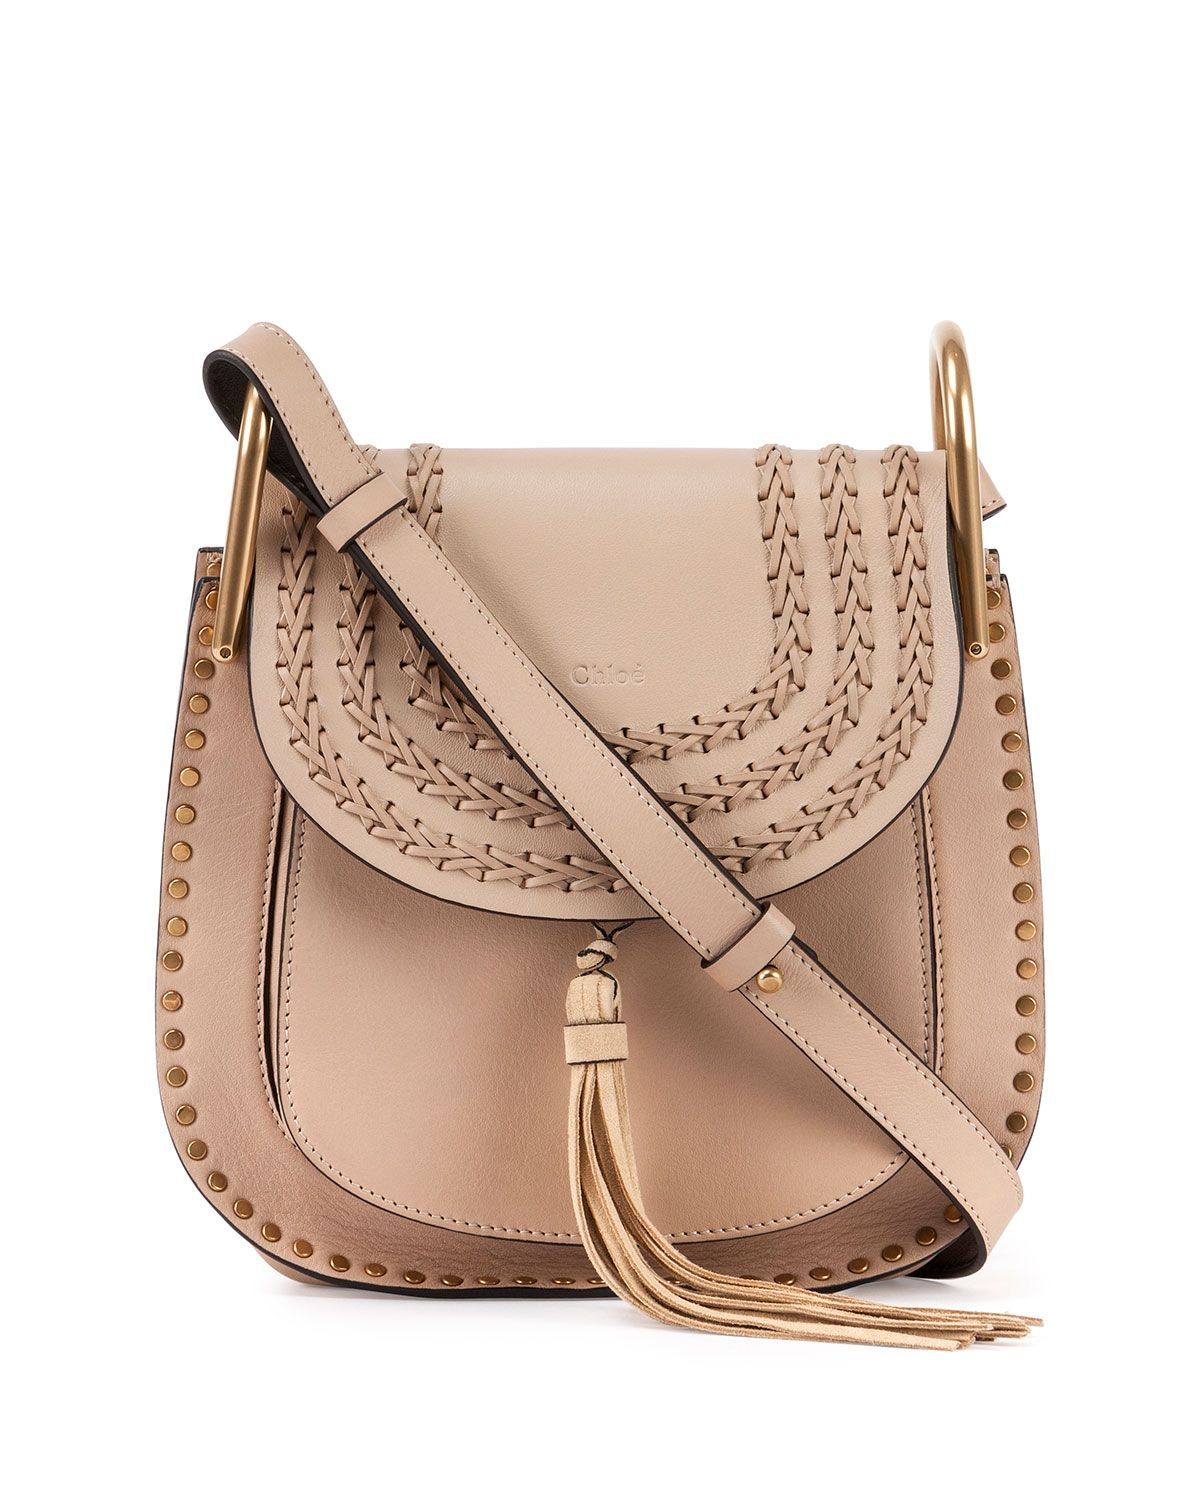 9e0d37d13d46 Chloe calfskin shoulder bag with woven and stud trim. Studs frame exterior  of horseshoe-shaped body. Adjustable shoulder strap with large U-shaped  rings  ...